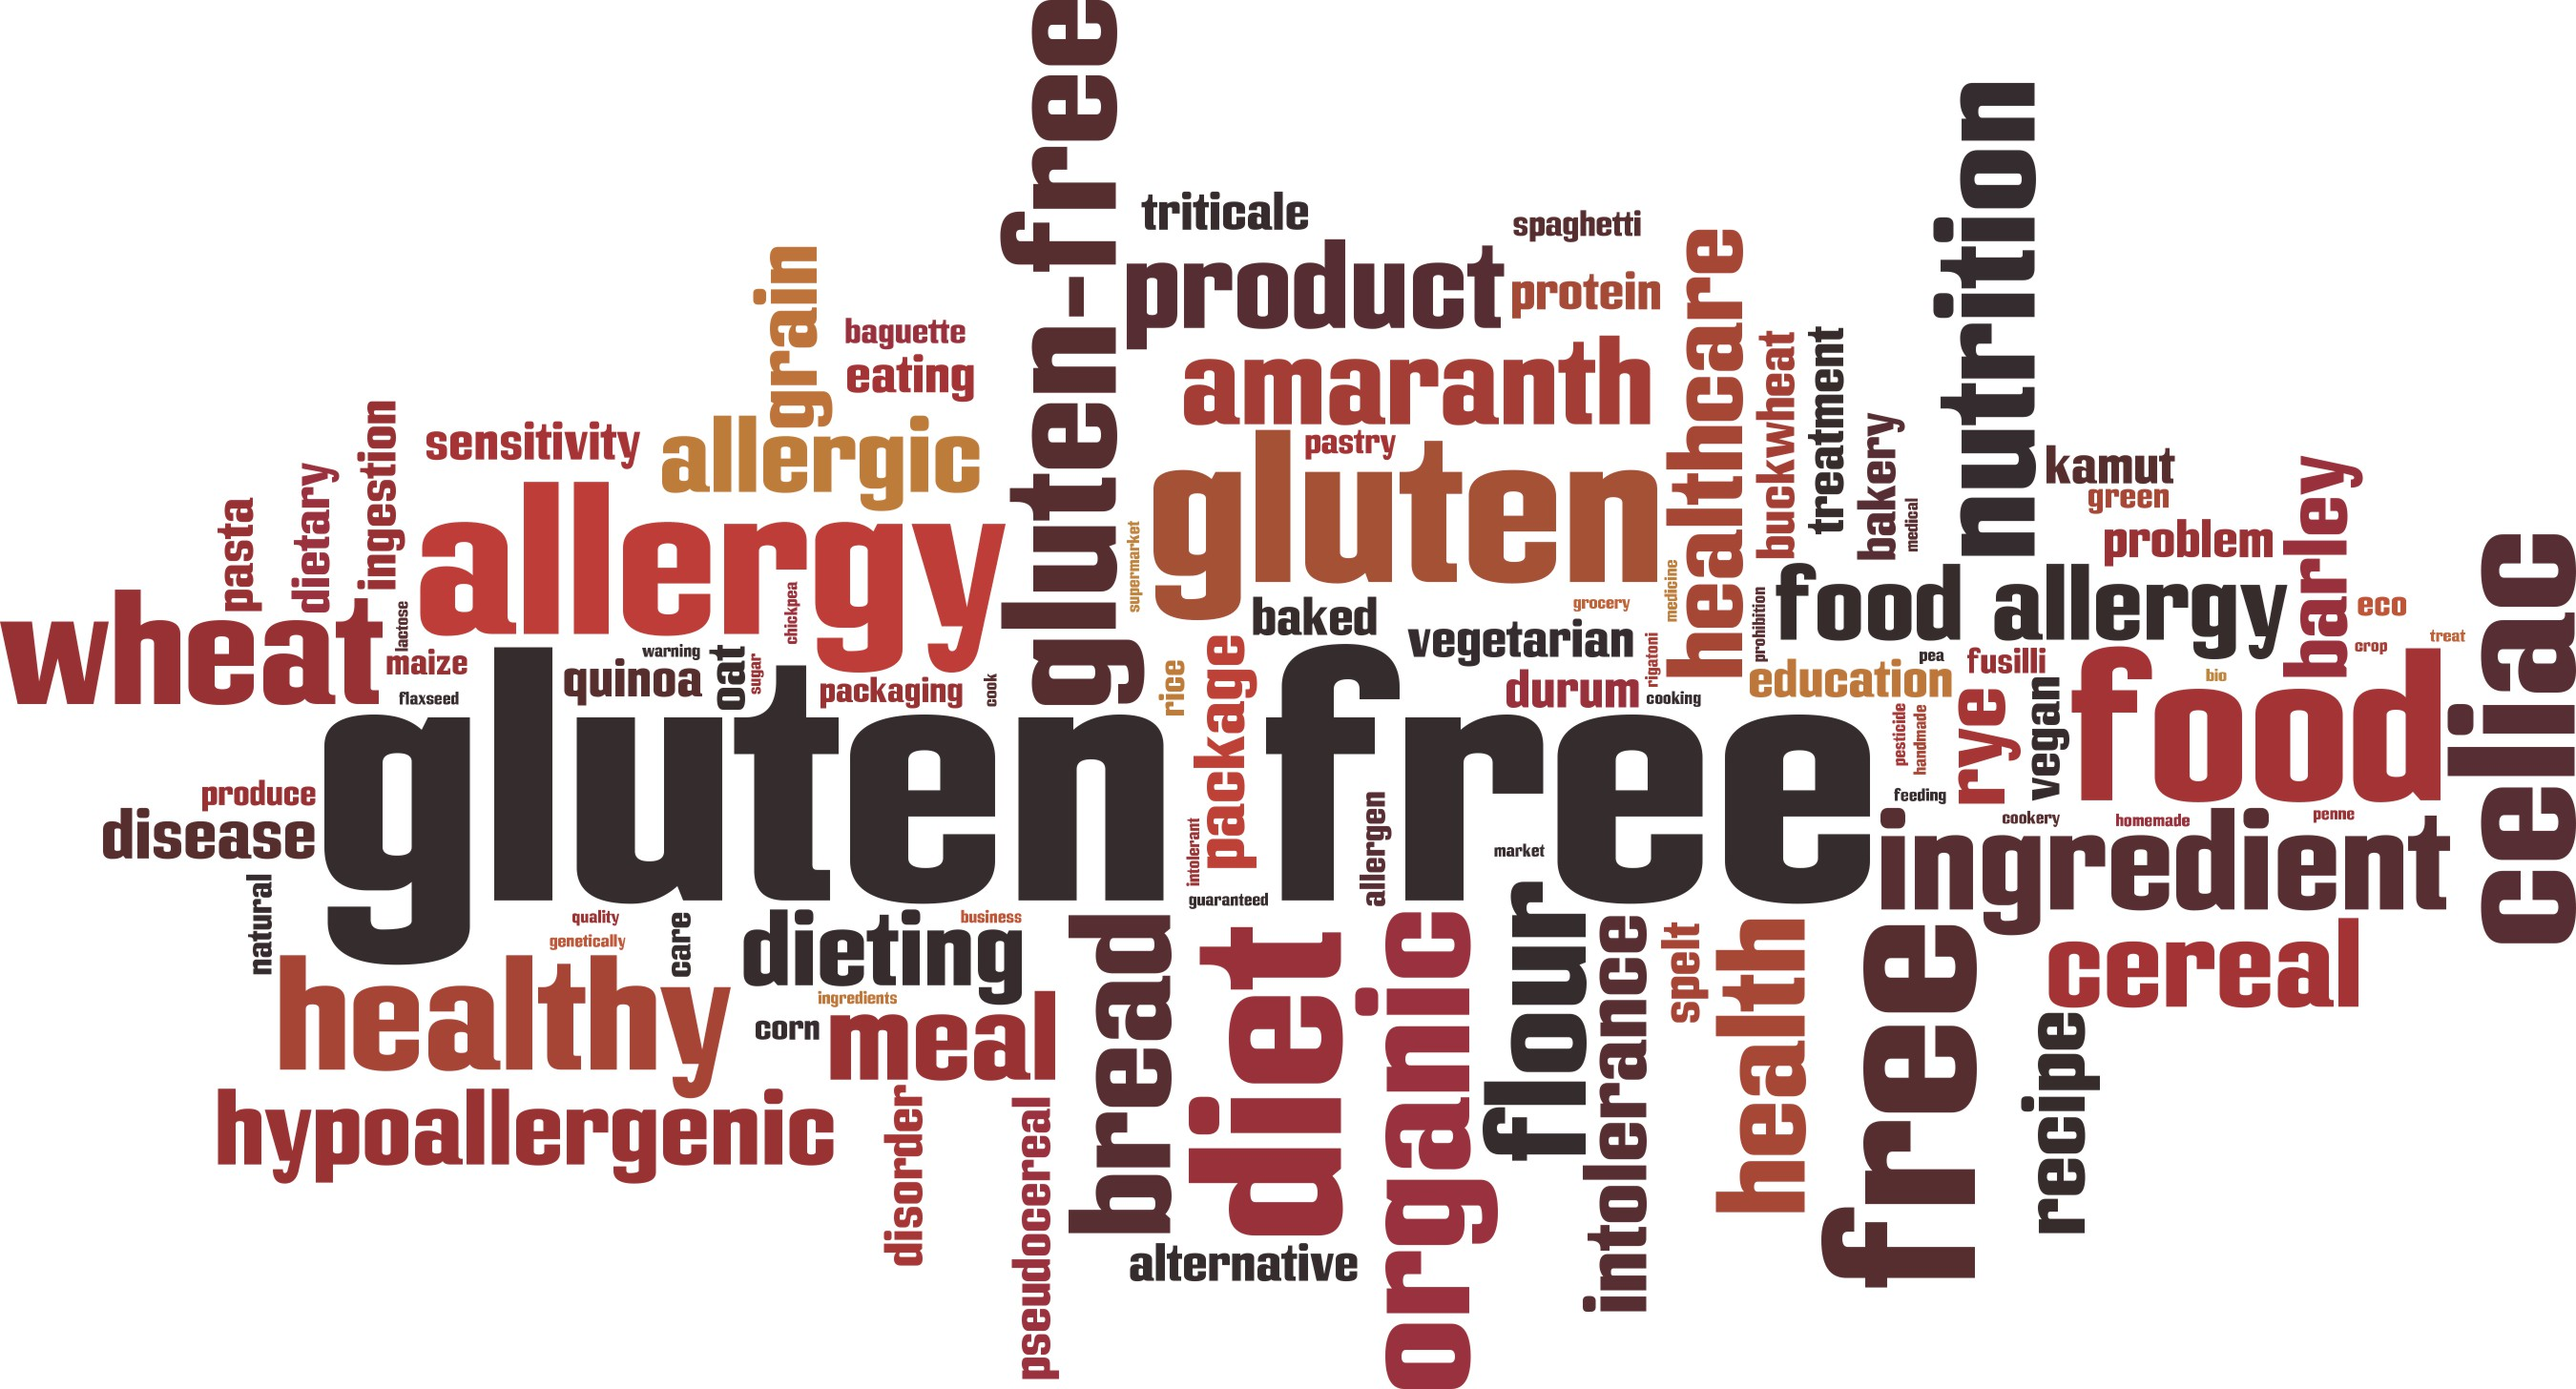 Gluten Free vs. Certified Gluten Free: Is There A Difference?